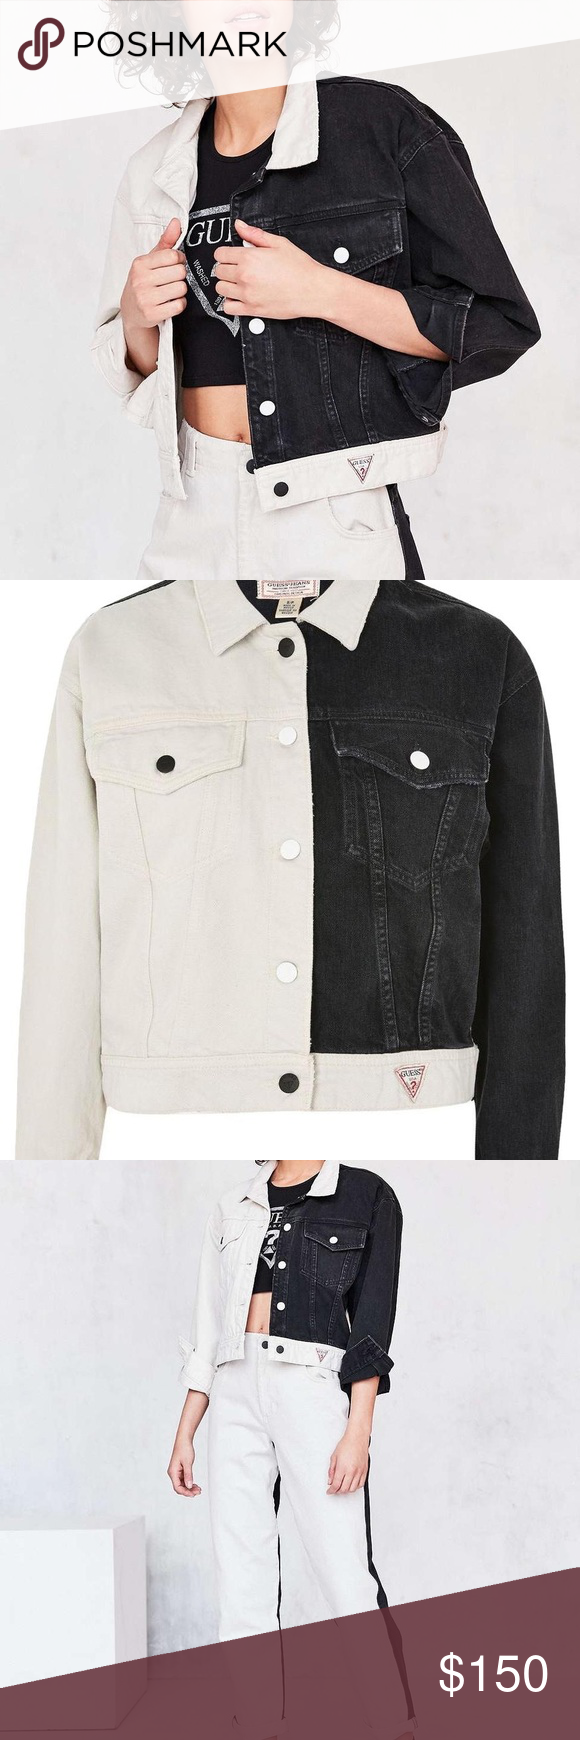 Guess Black And White Denim Jacket Limited Edition Black And White Block Color Never Worn Guess Jackets Coats Jean J White Denim Jacket White Denim Jackets [ 1740 x 580 Pixel ]